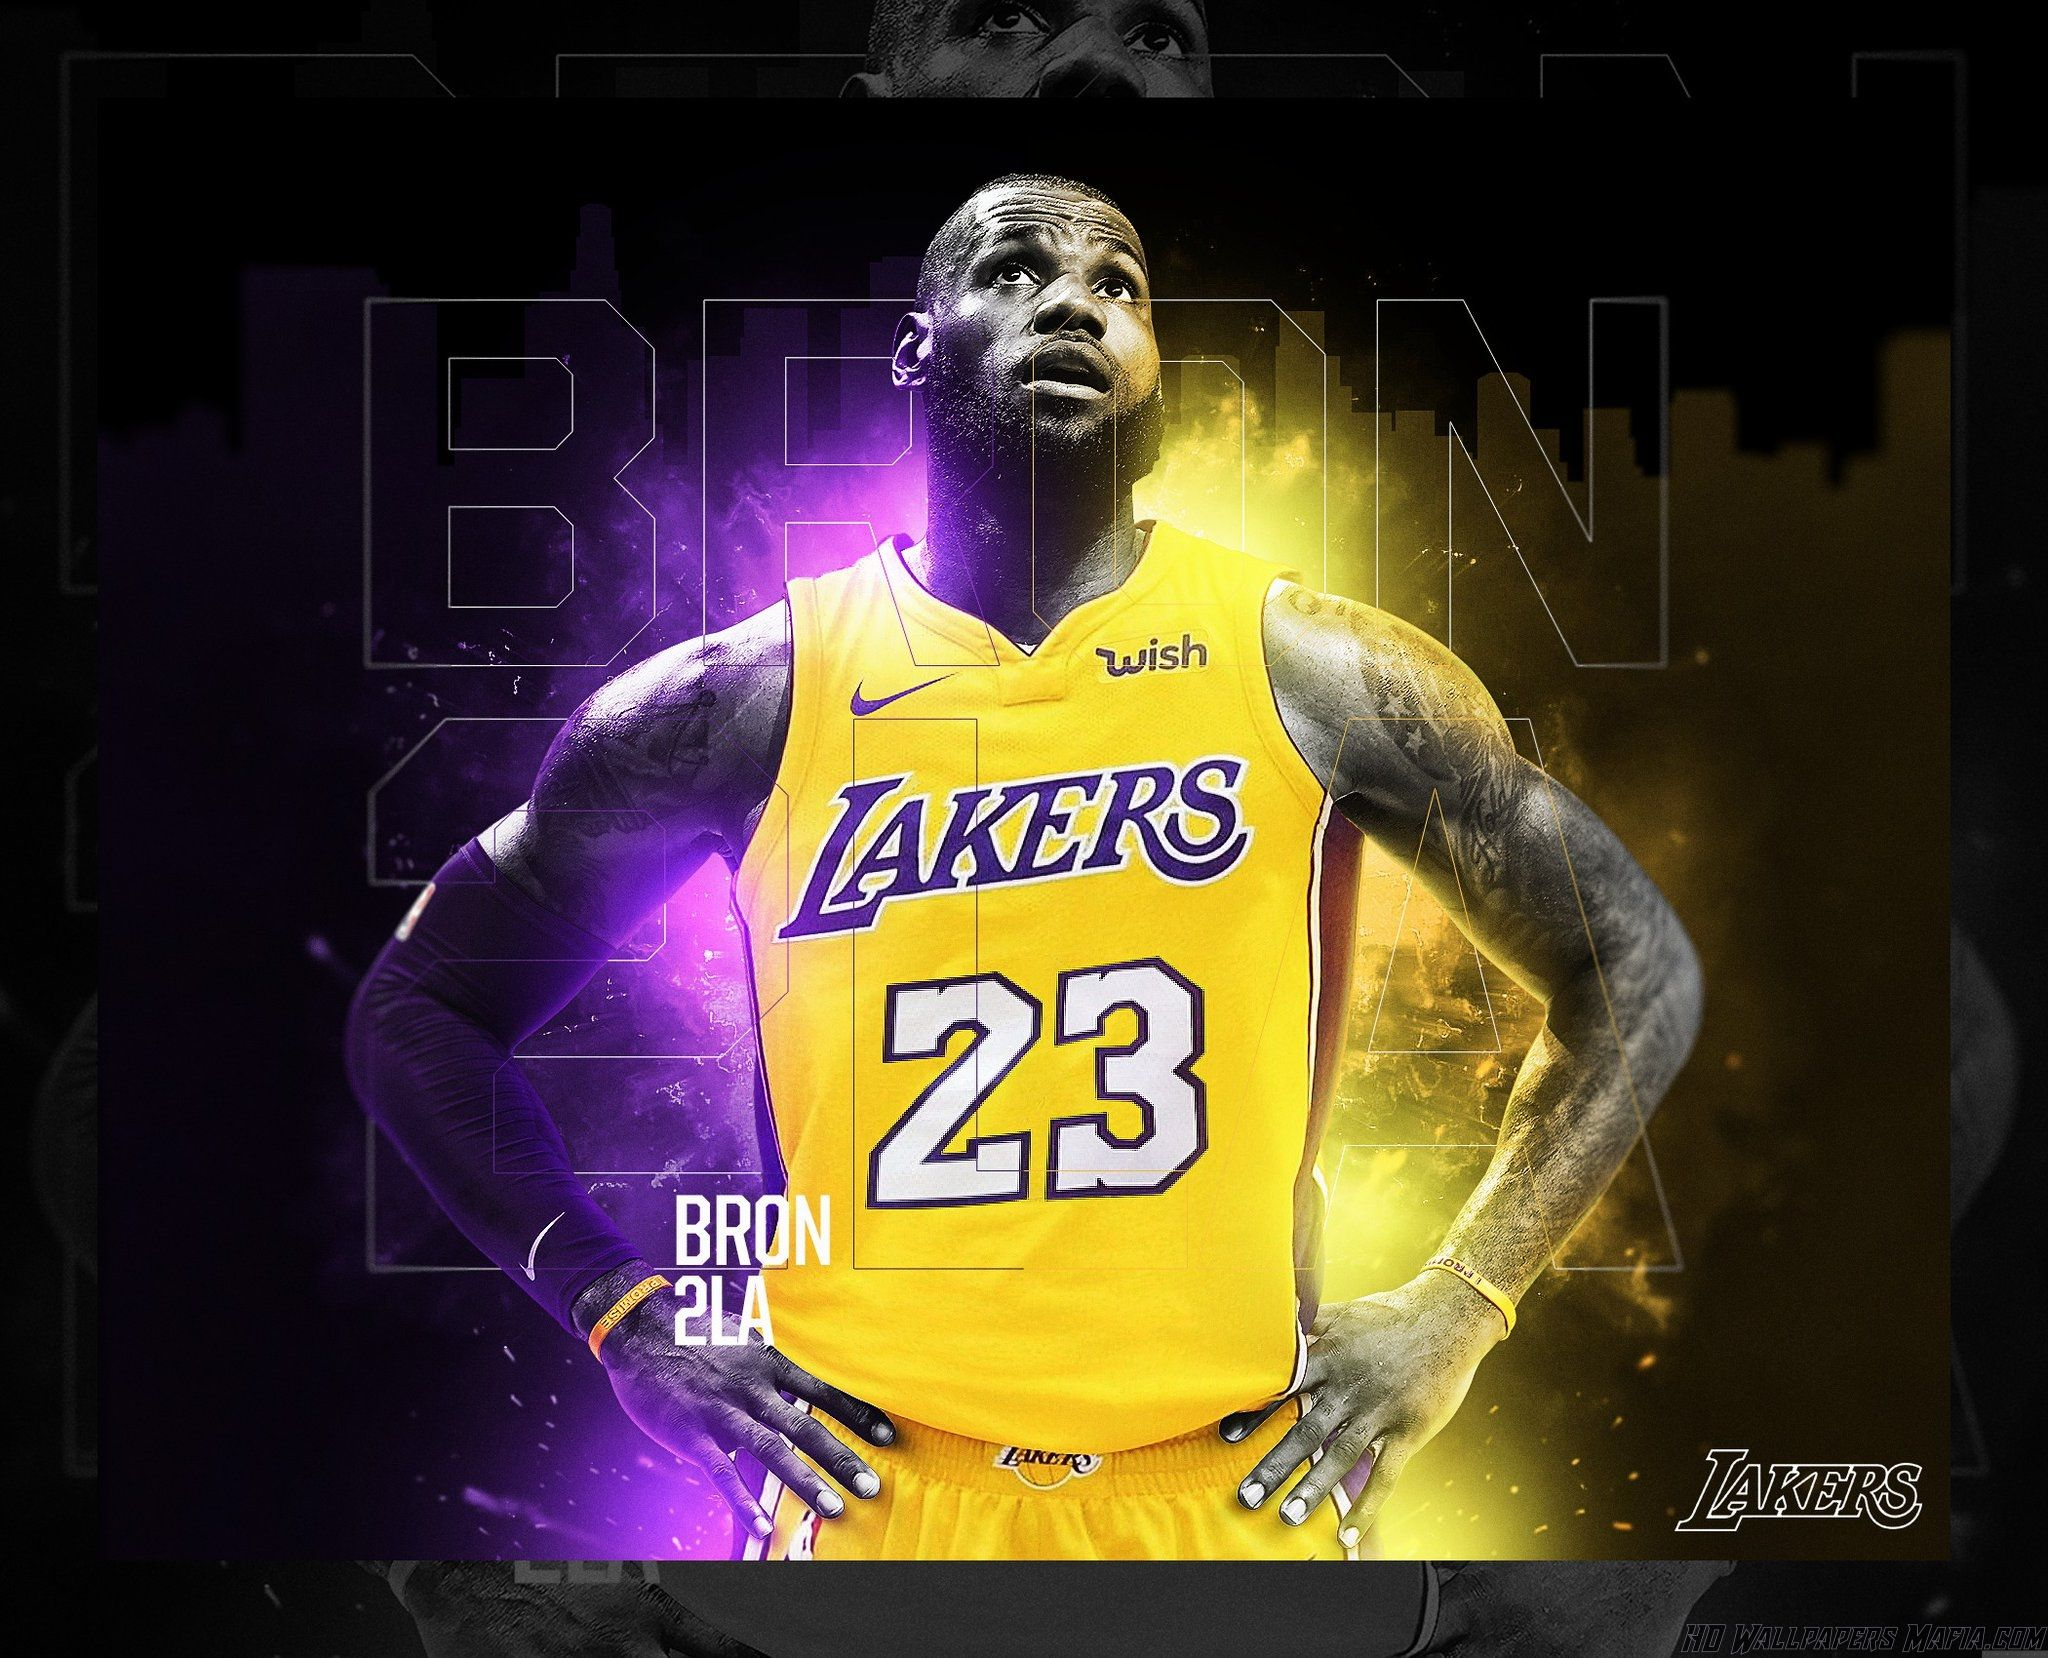 Pin By Zubayr Raison On Mansions Luxury In 2020 Lebron James Lebron James Lakers Lakers Wallpaper